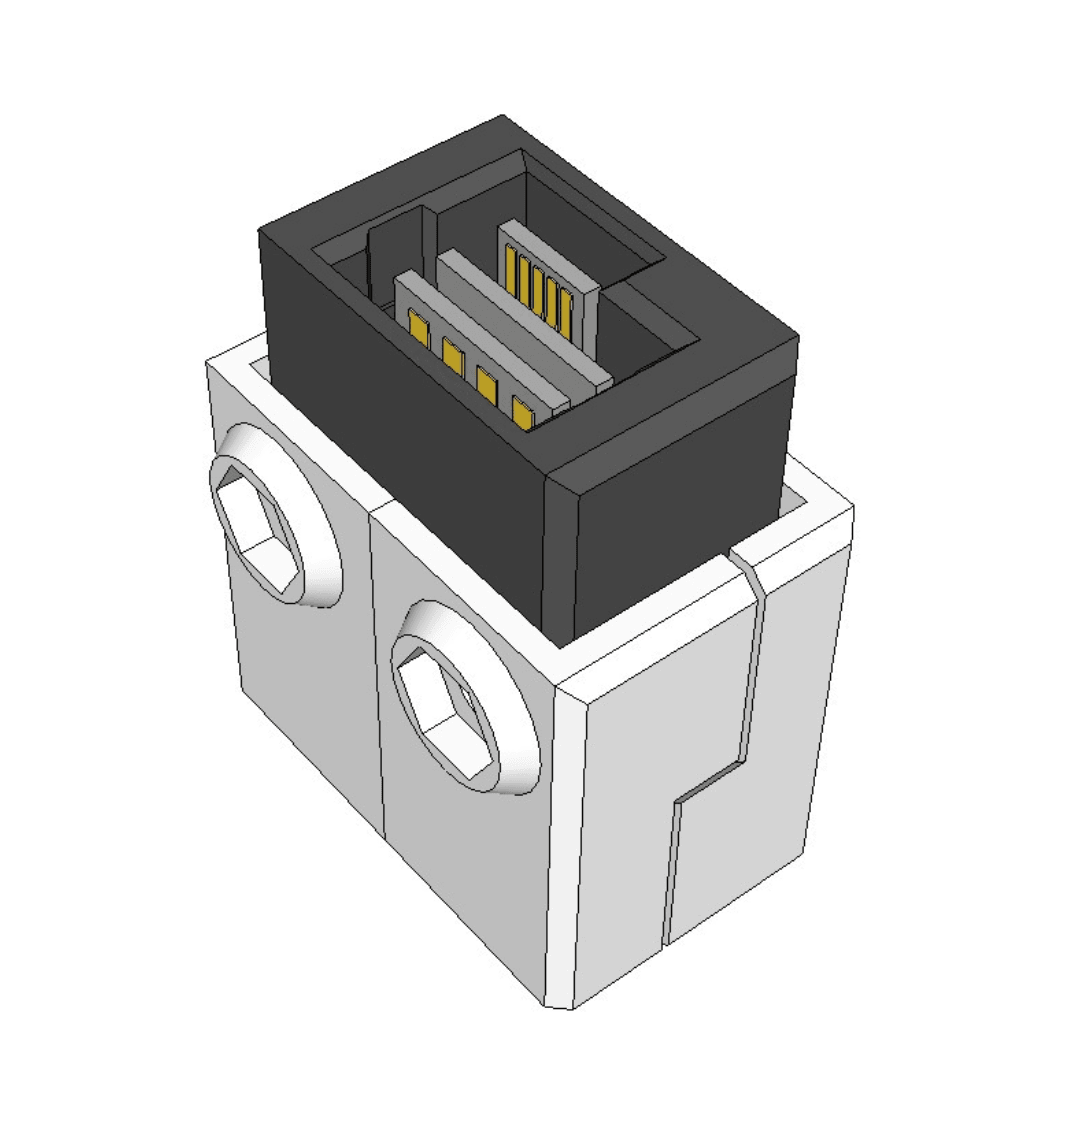 Capture d'écran 2018-04-05 à 15.10.59.png Download free STL file Dasaki Kinect2 (One) USB 3.0 / DC breakout connector adapter • Template to 3D print, dasaki